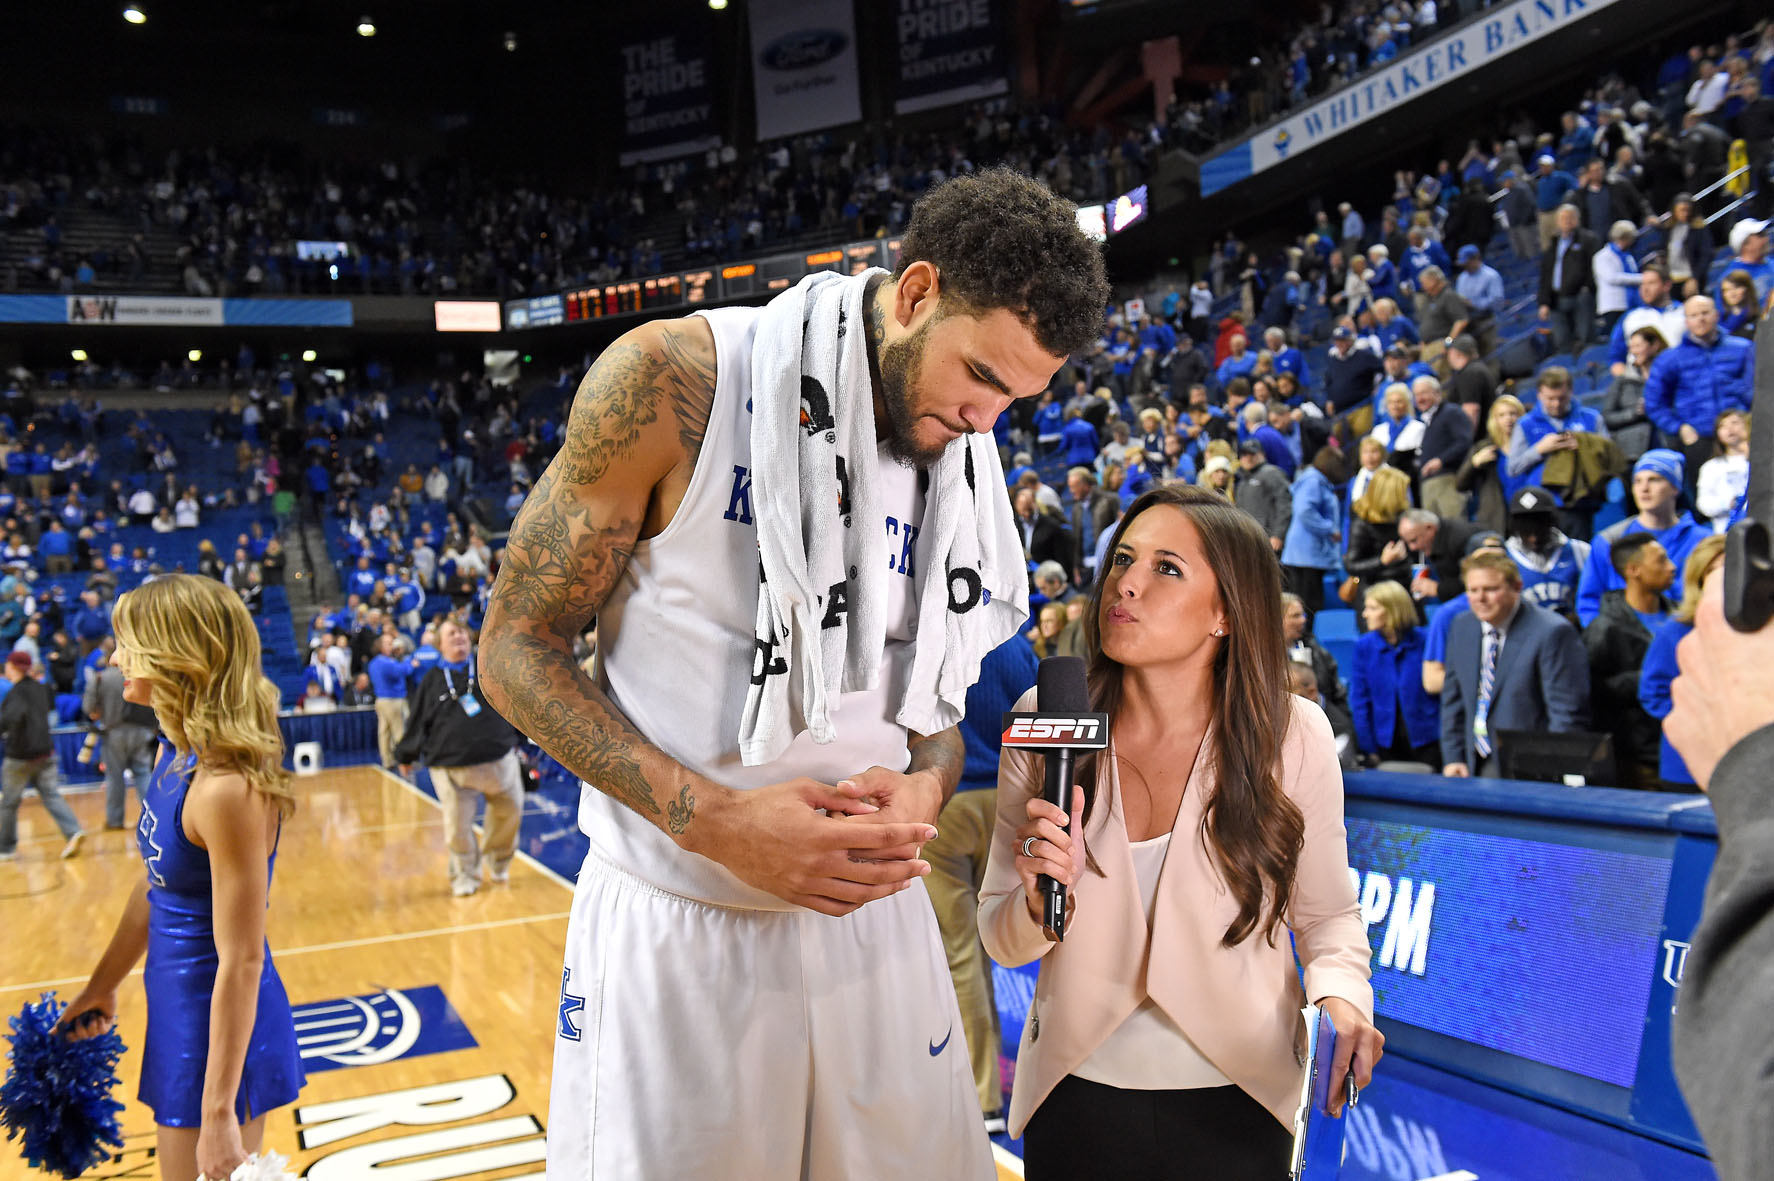 In addition to football, Hartung also reports on basketball and baseball for ESPN. Here, she interviews Willie Cauley-Stein of the Kentucky Wildcats. Photo by Scott Clarke / ESPN Images.